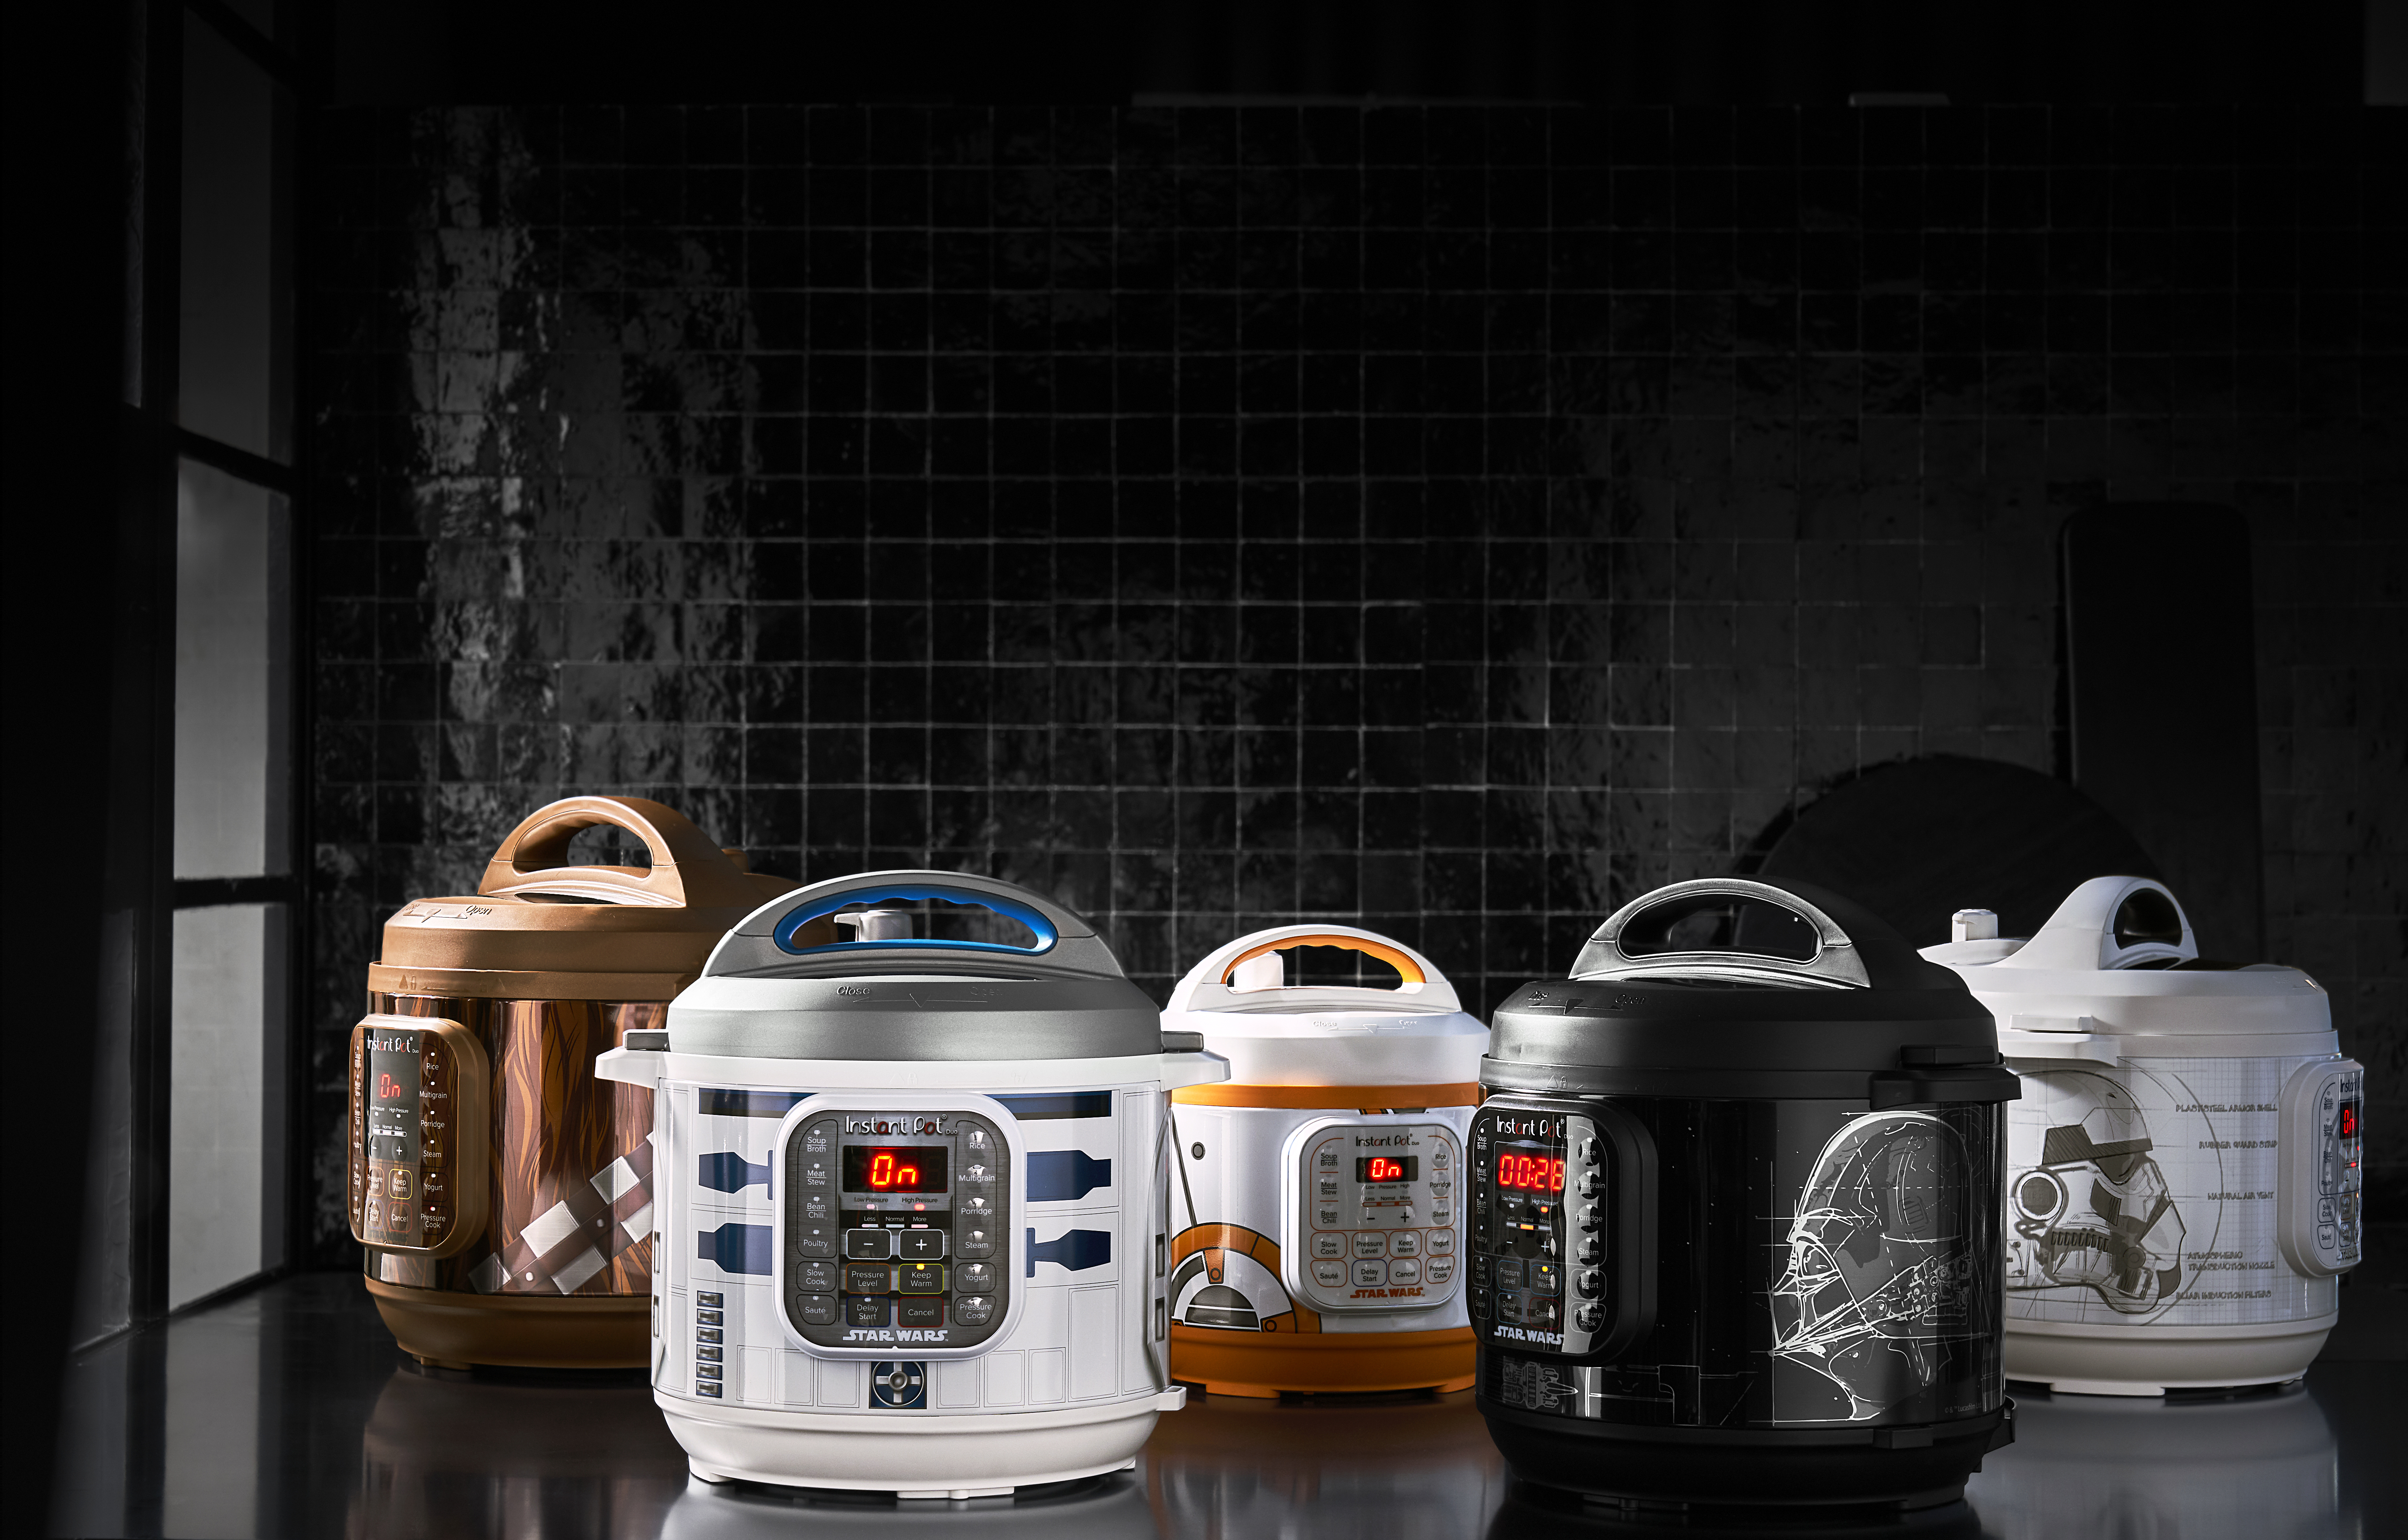 Five Star Wars-designed Instant Pots on a black background